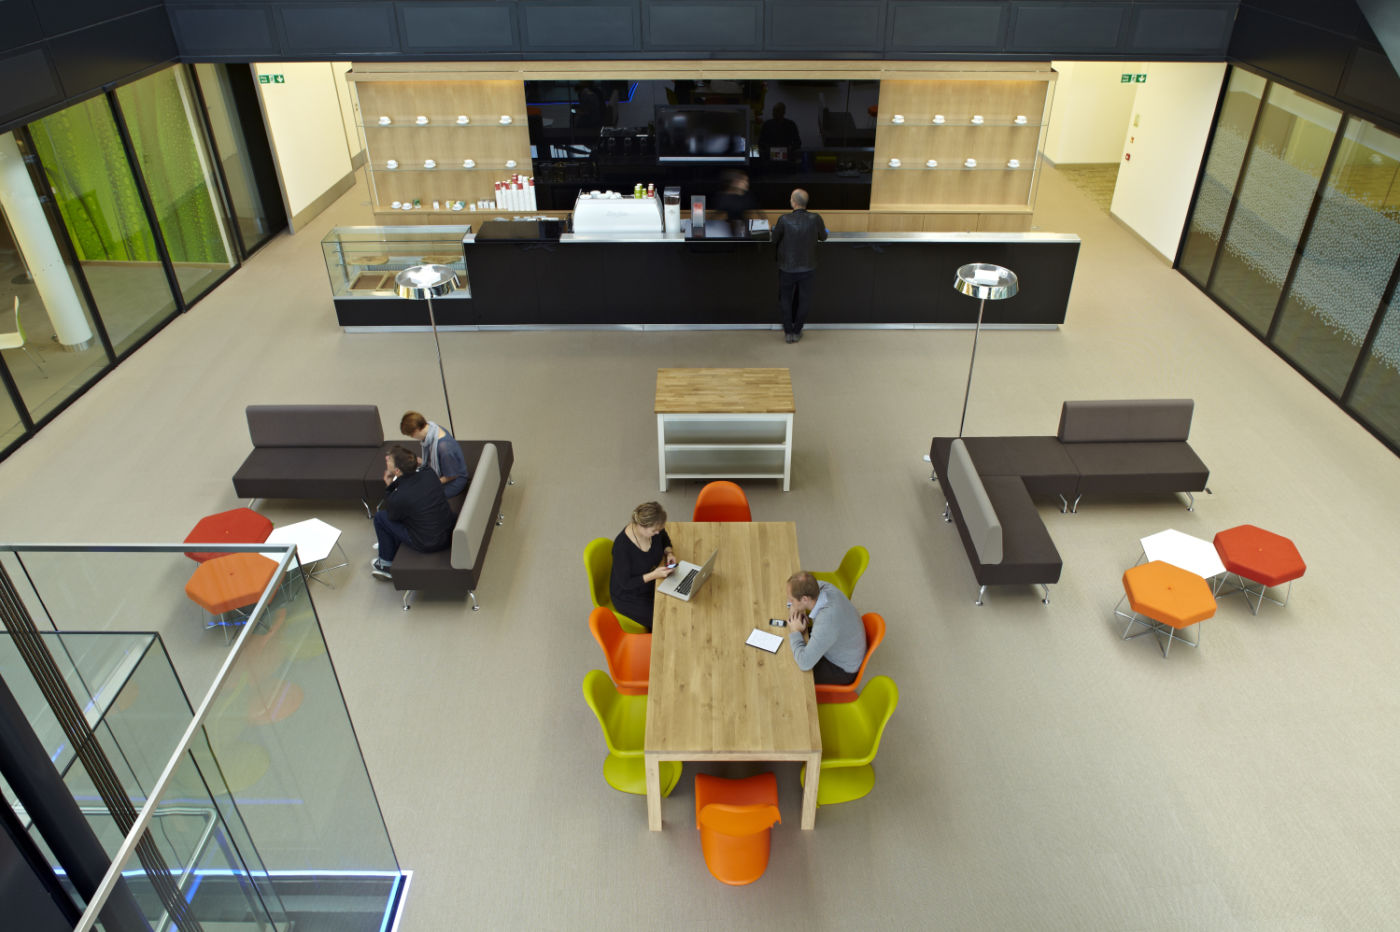 Overhead view of staff working in modern office design